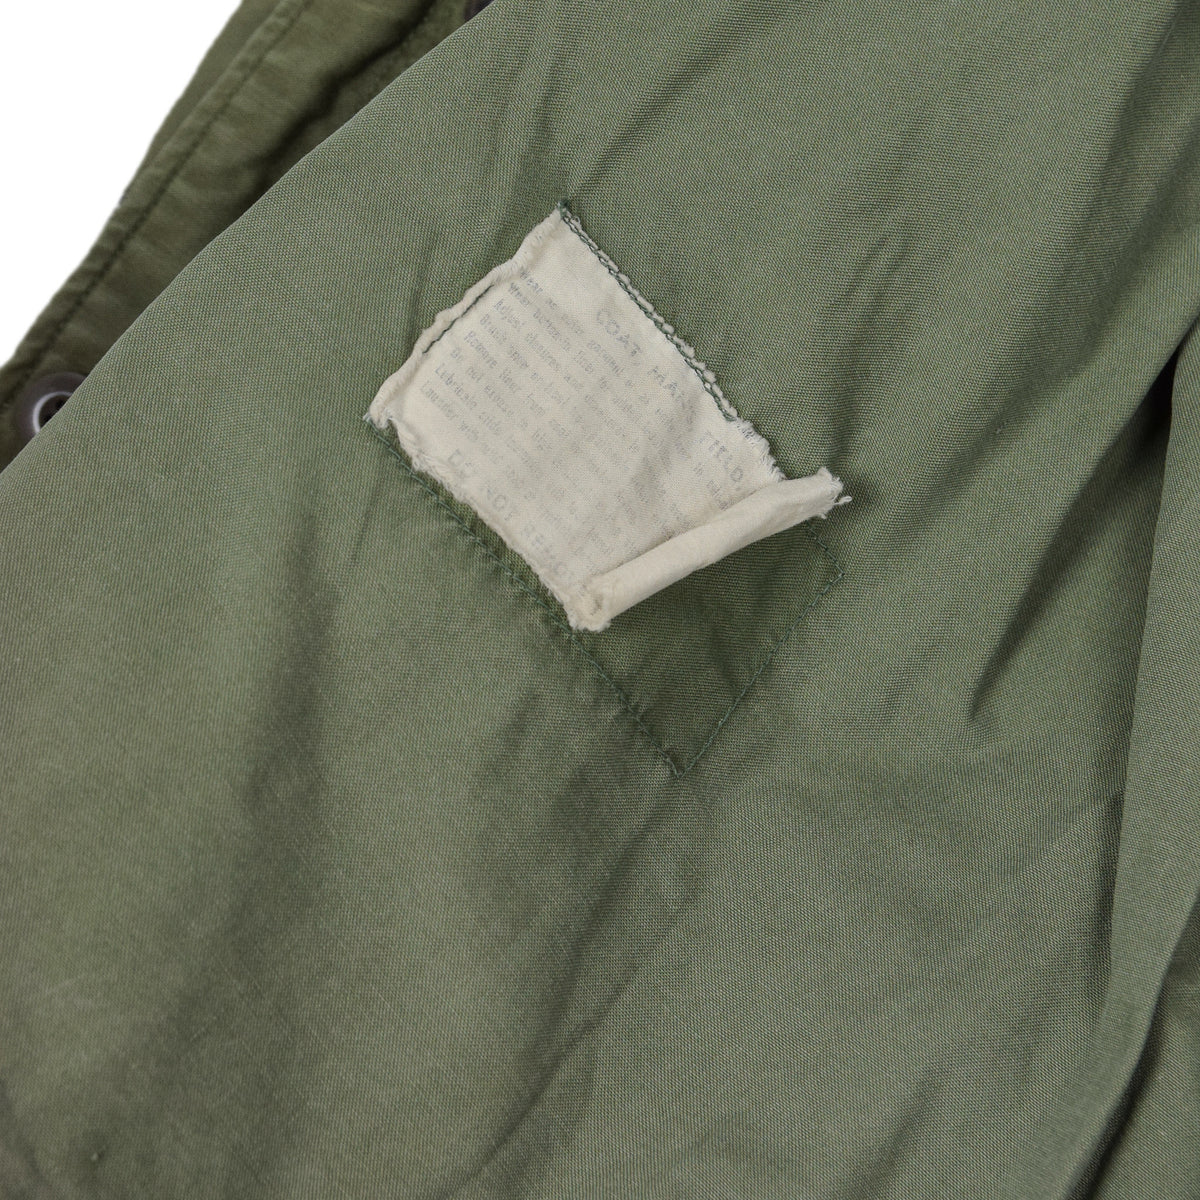 Vintage 60s Vietnam M-65 Field Cotton Sateen 0G-107 Green US Army Coat M Reg hem label